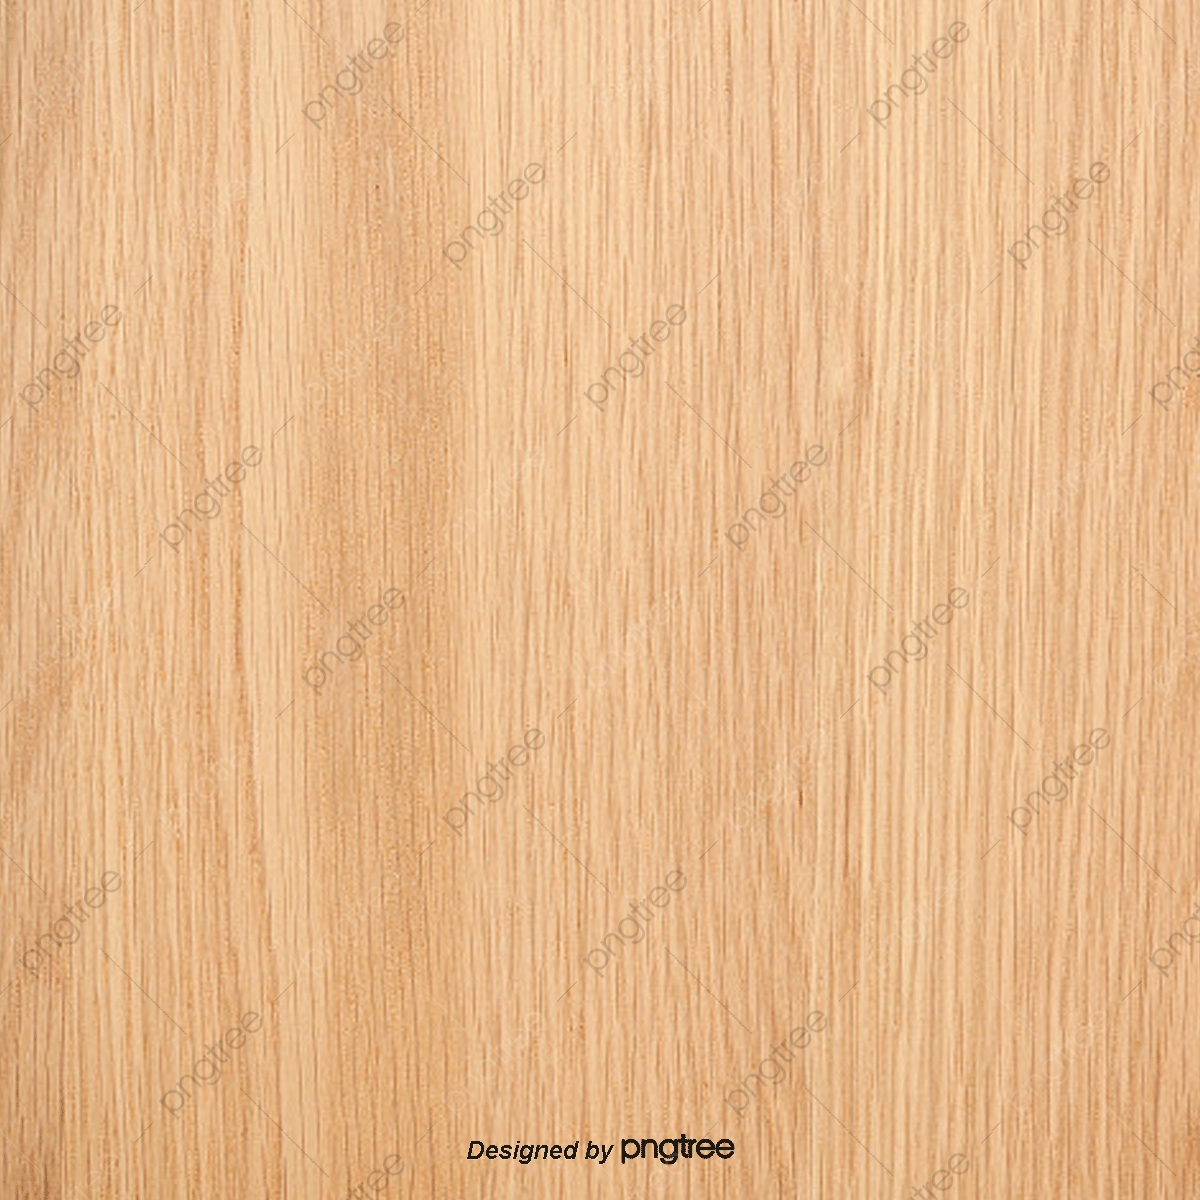 Commercial Use Resource. Upgrade To Premium Plan And Get License  Authorization.UpgradeNow · Composite Wood Wood Grain ...